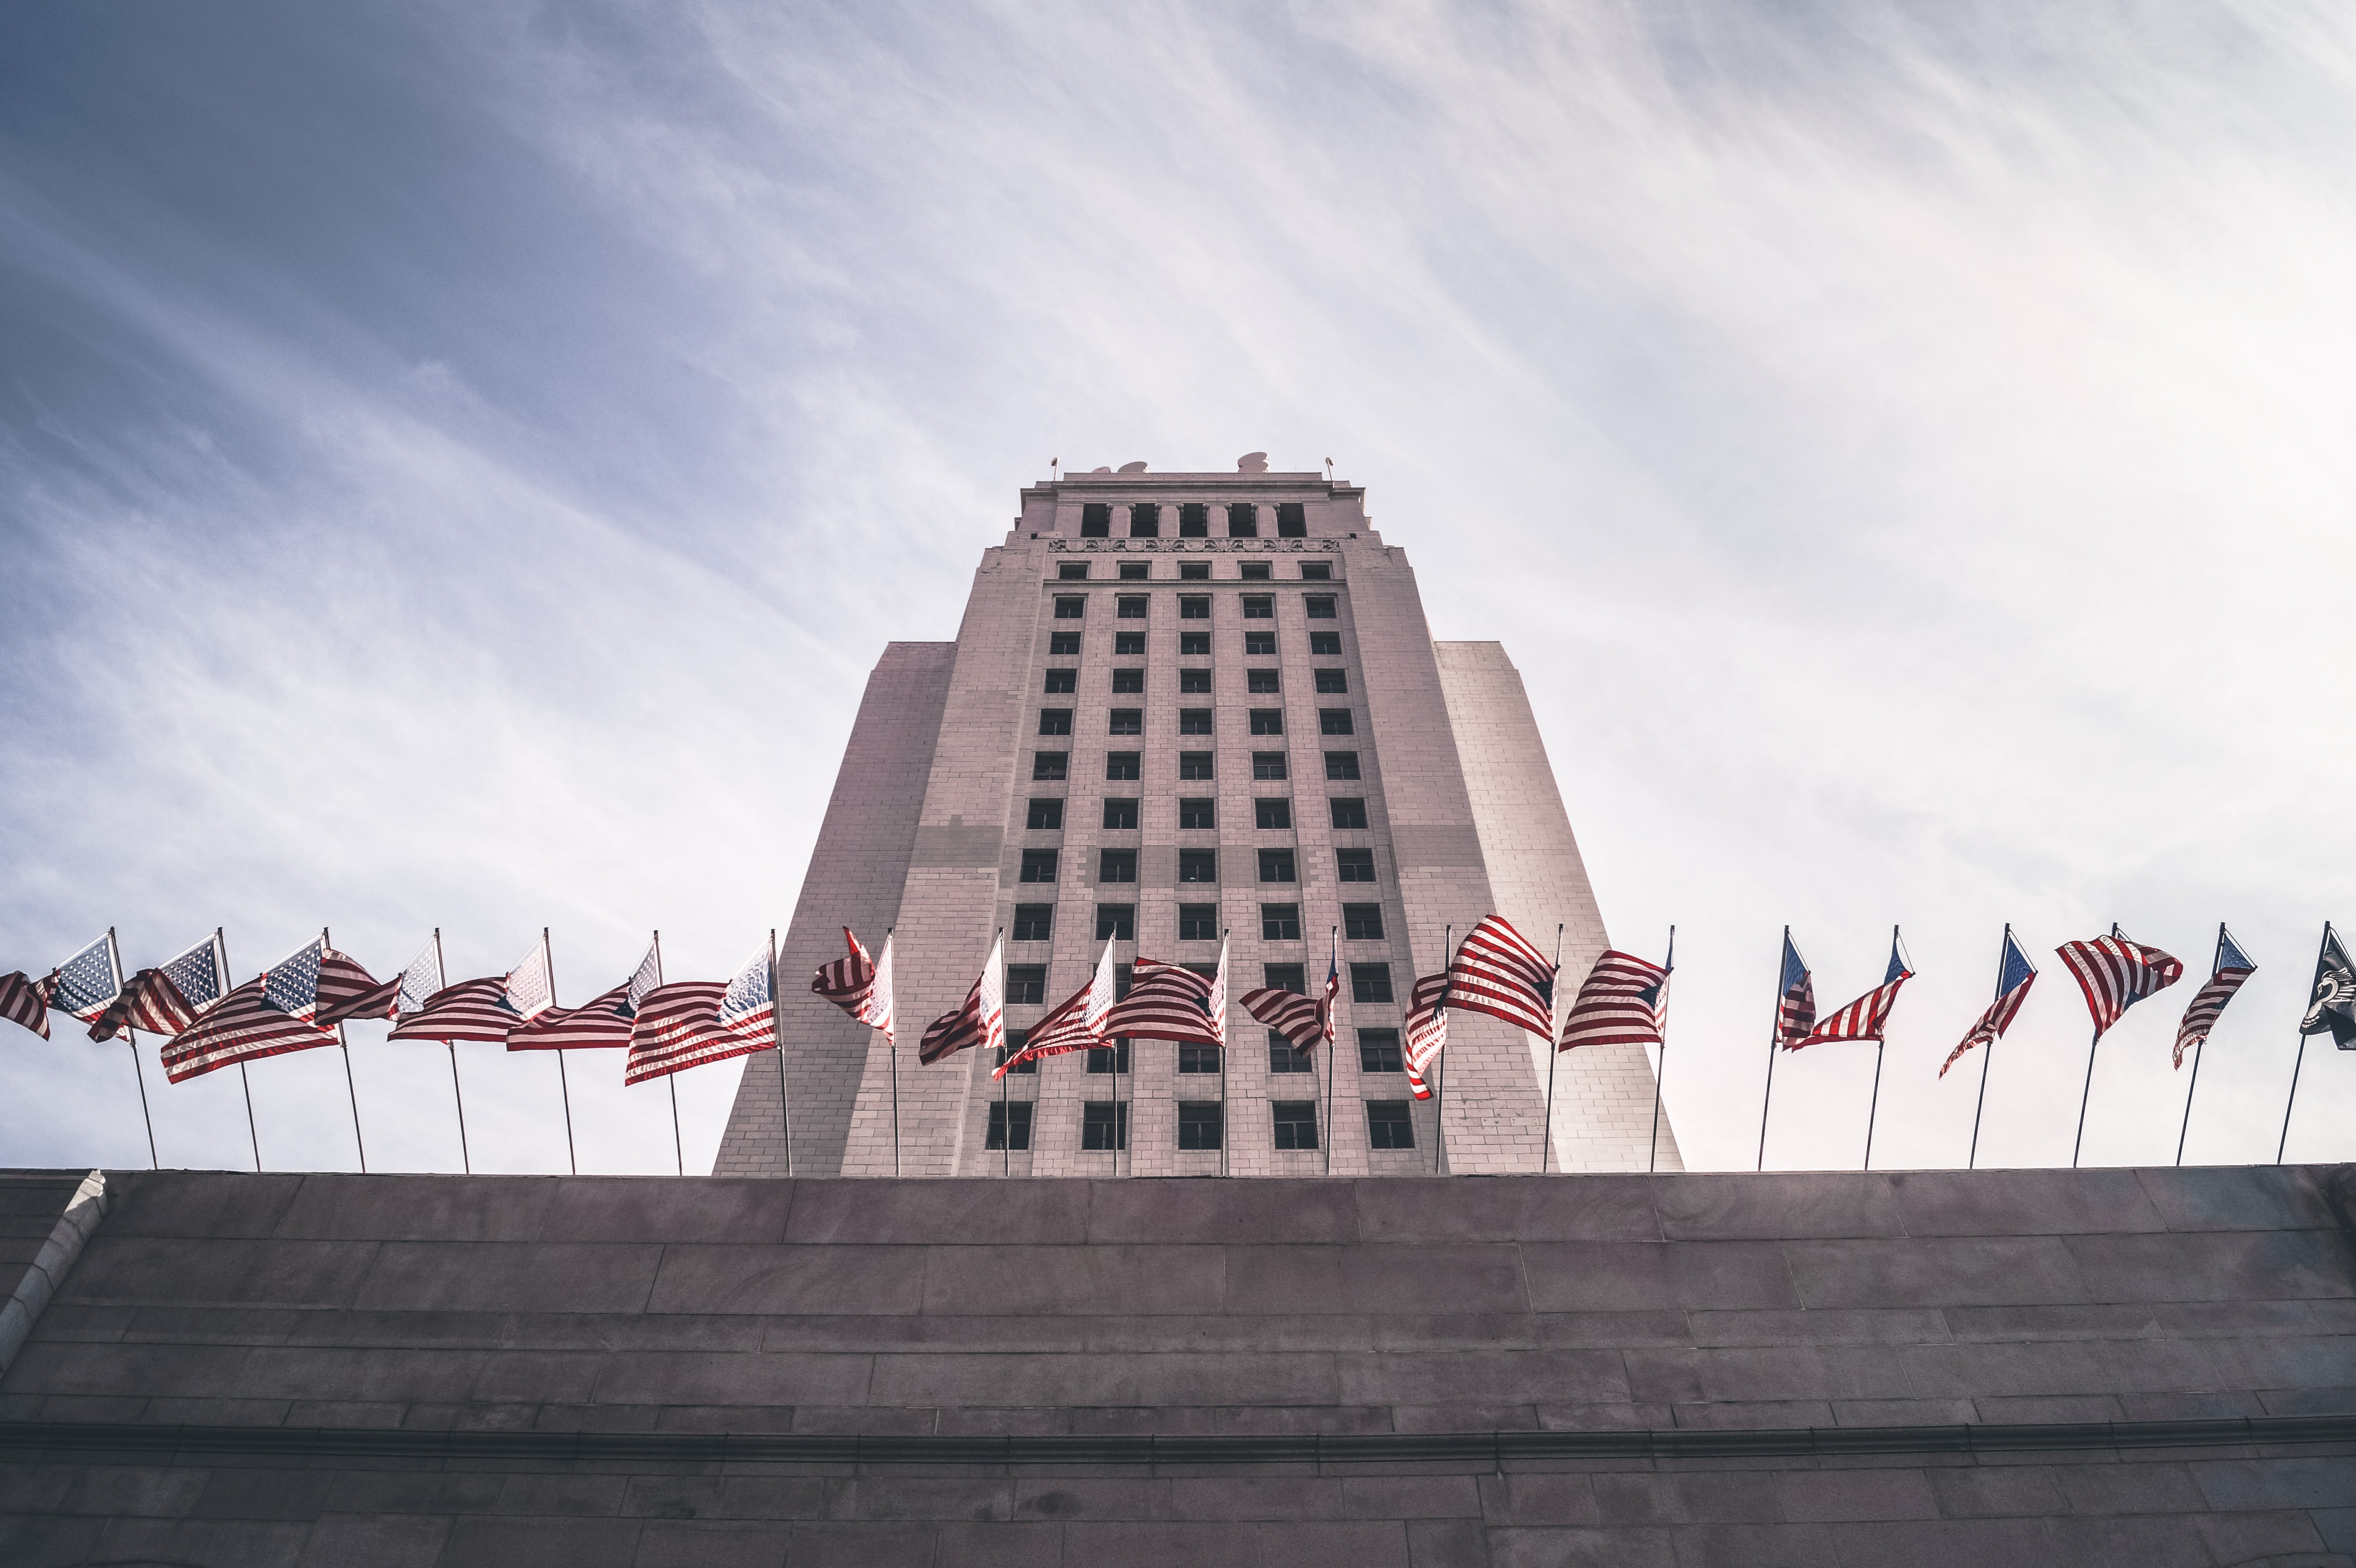 A long row of American flags on a concrete ledge near Los Angeles City Hall